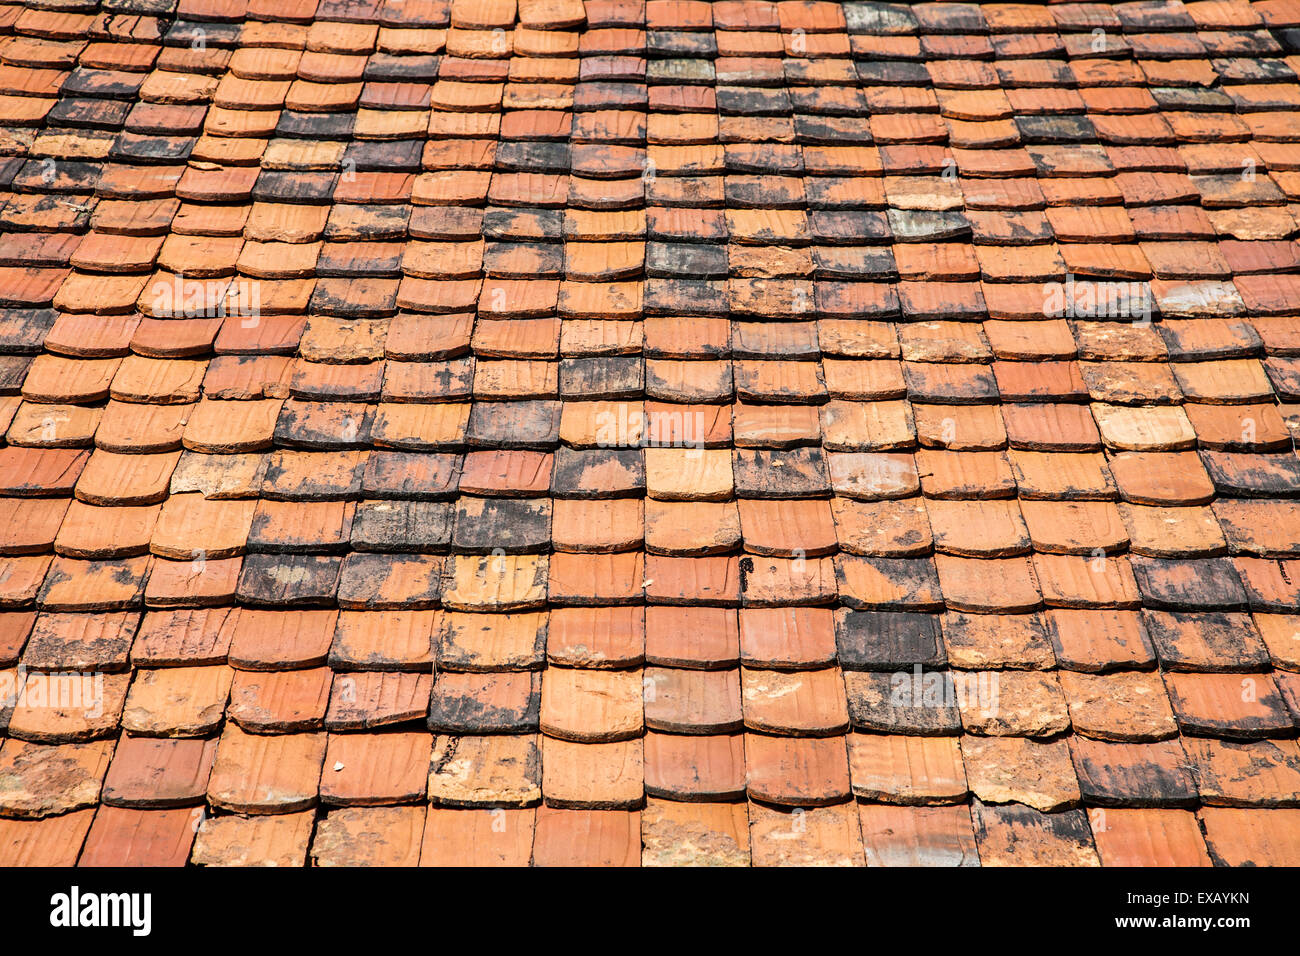 roof tiles house backgrounds stockfotos roof tiles house backgrounds bilder alamy. Black Bedroom Furniture Sets. Home Design Ideas